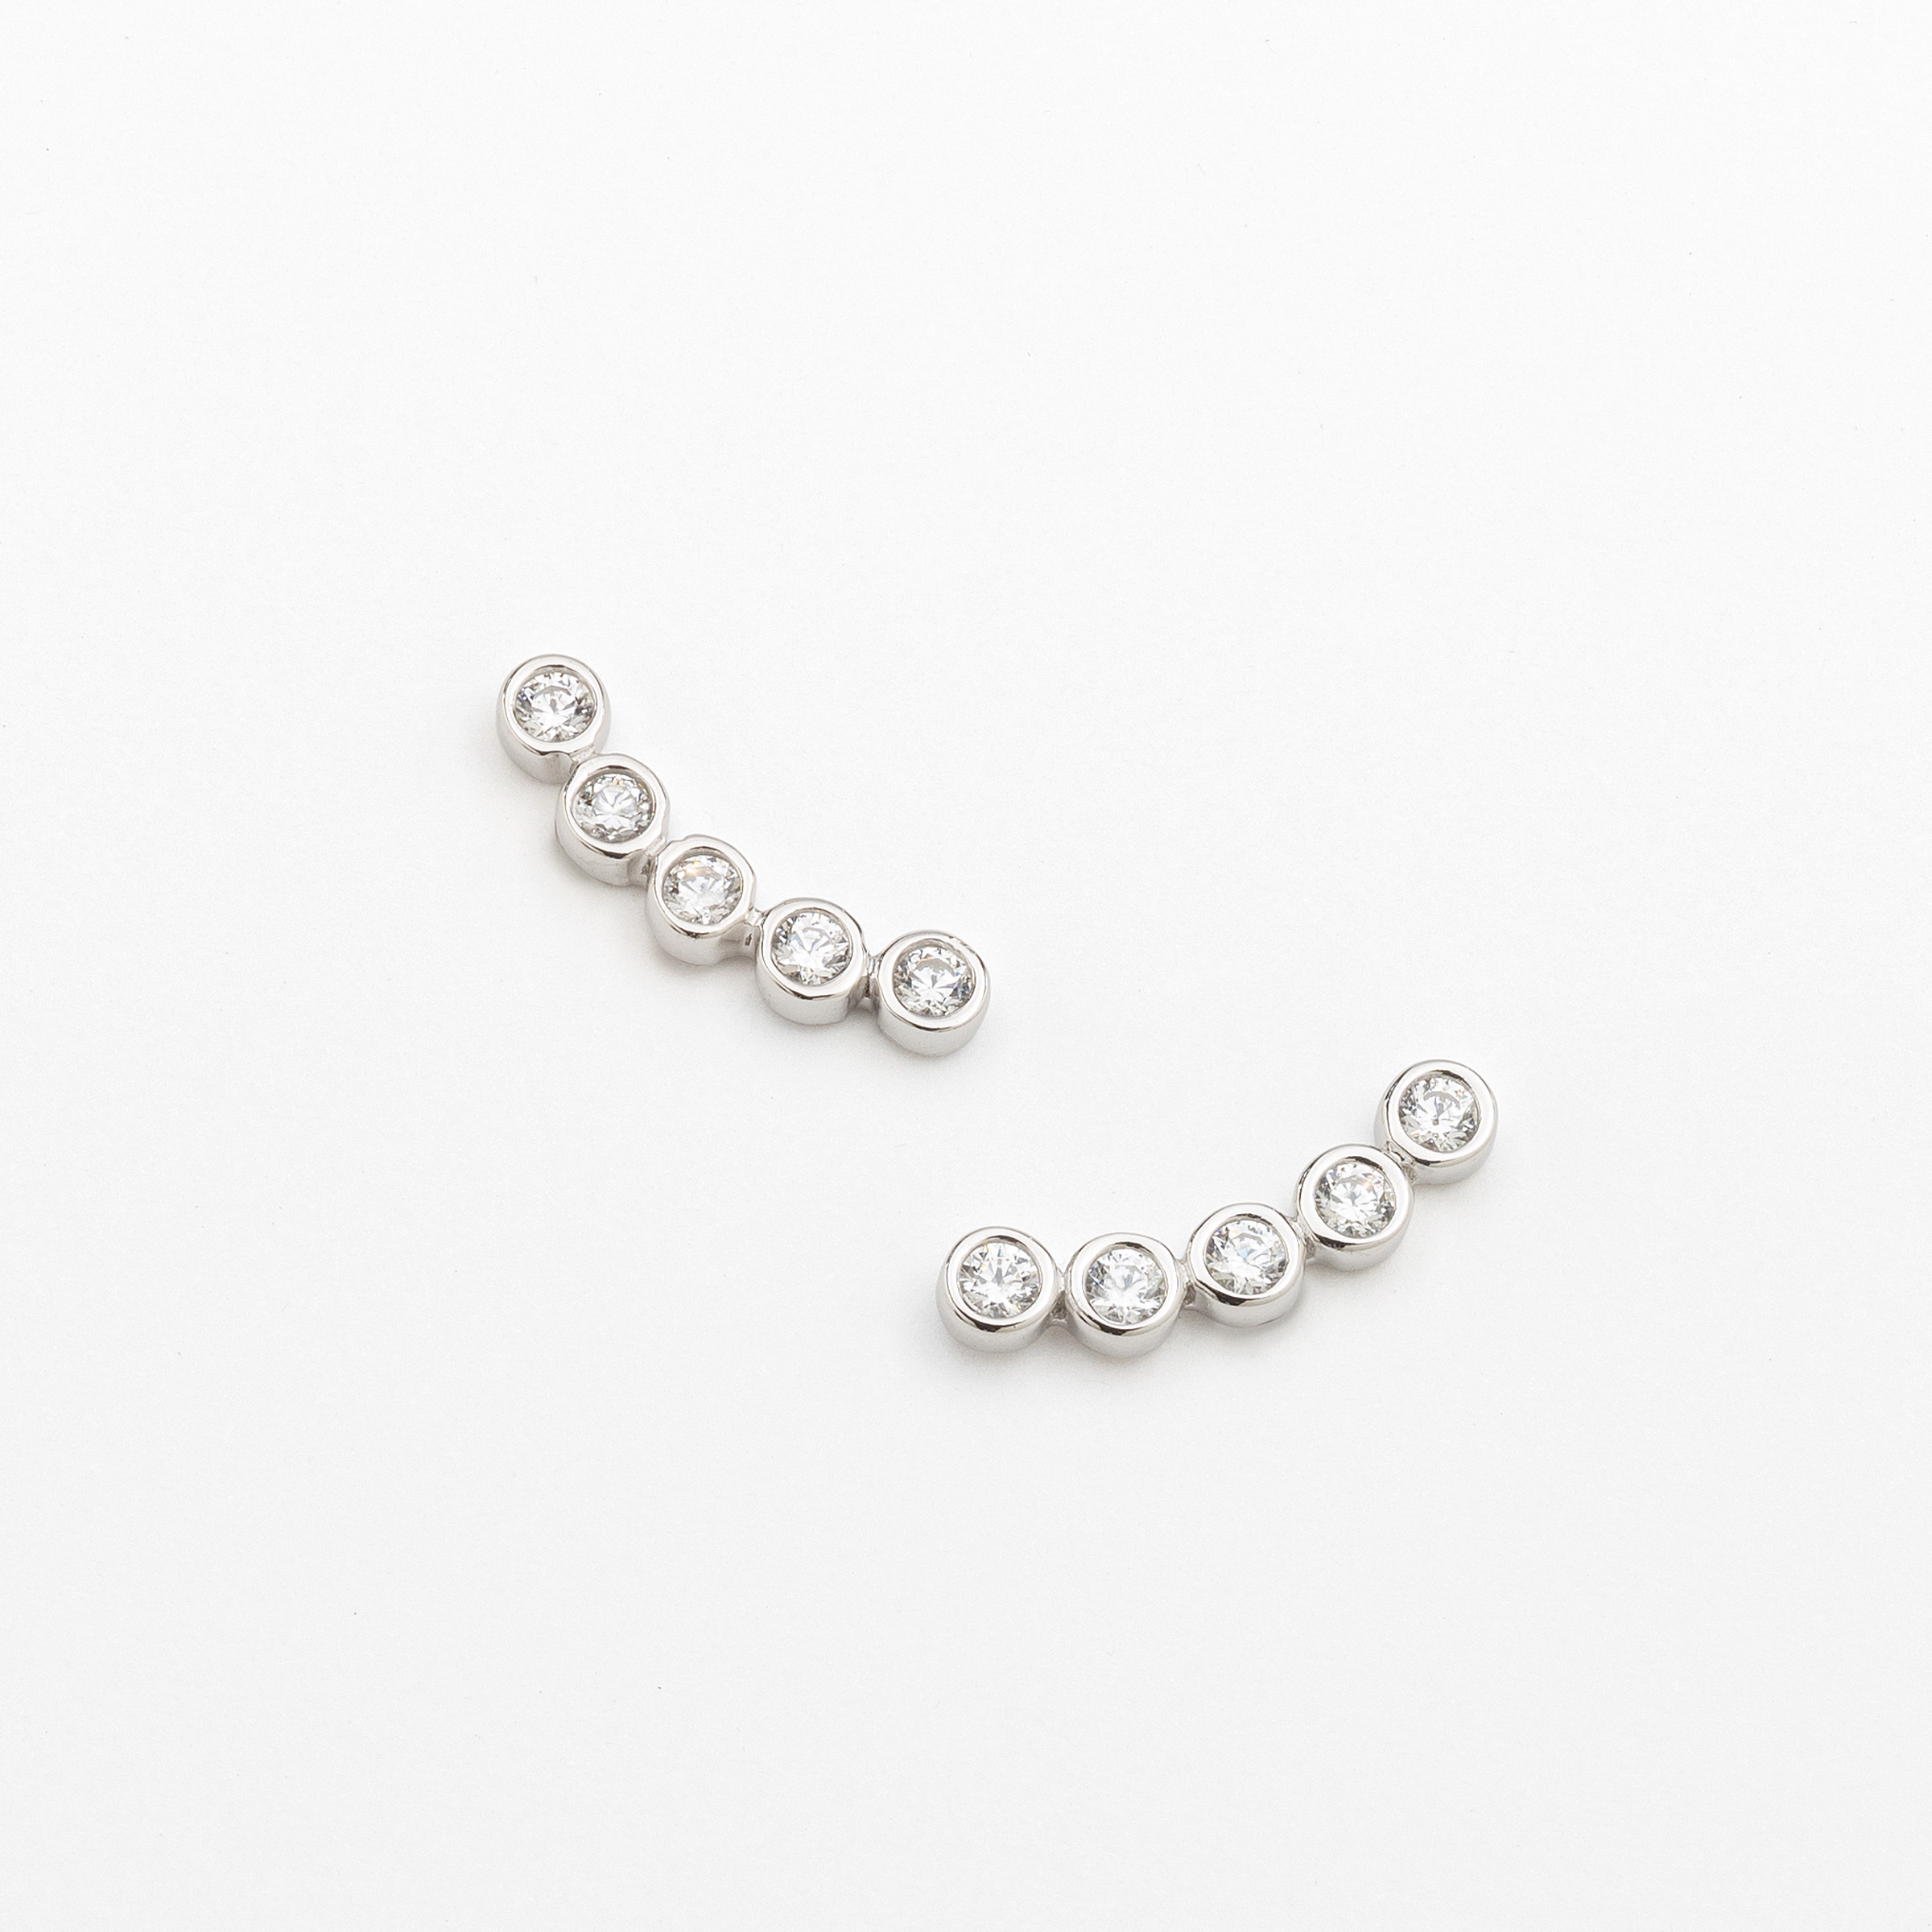 aace9968a5474 Touchstone Crystal by Swarovski – Jewelry Home Parties